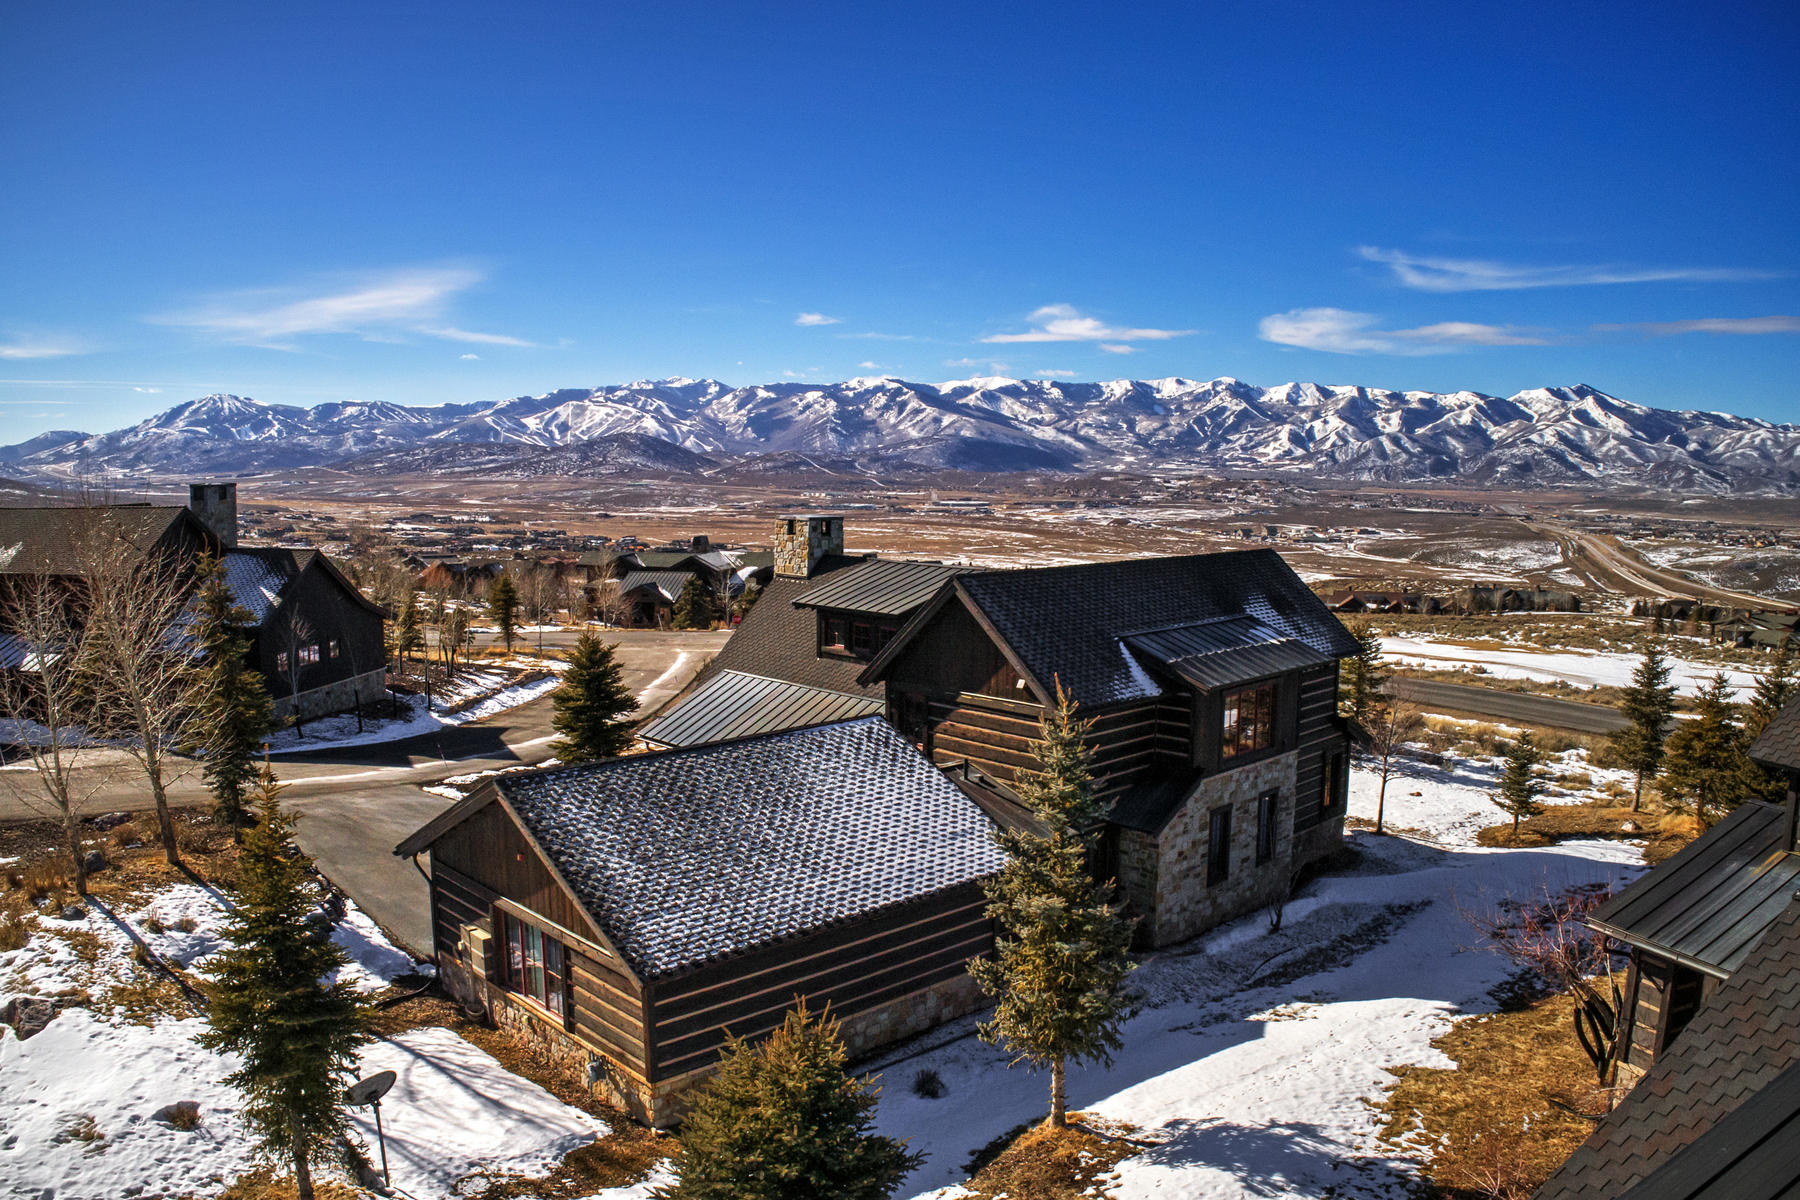 Single Family Home for Sale at Elevated Mountain Happiness Lives Here! 8228 Western Sky Park City, Utah 84098 United States